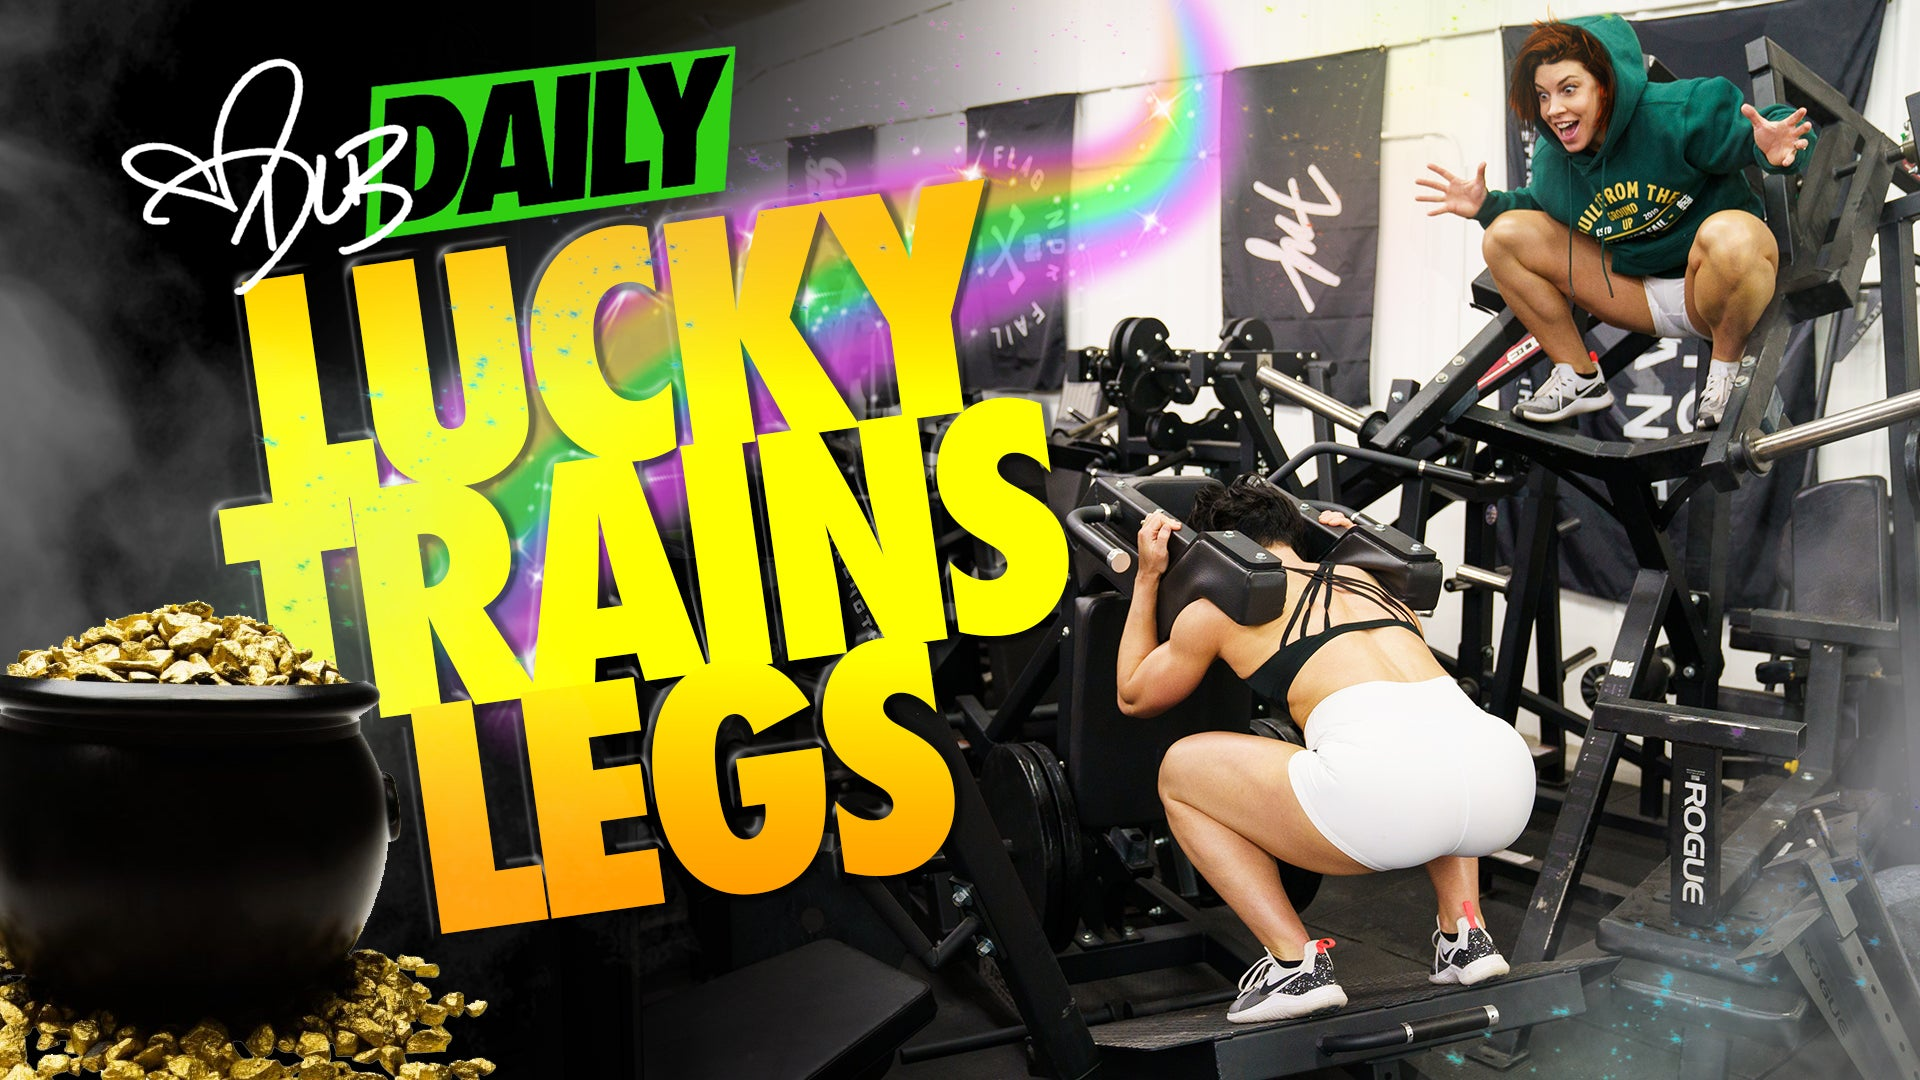 LUCKY THE LEPRECHAUN TRAINS LEGS WITH DLB | 3-17-21 | #DLBDAILY